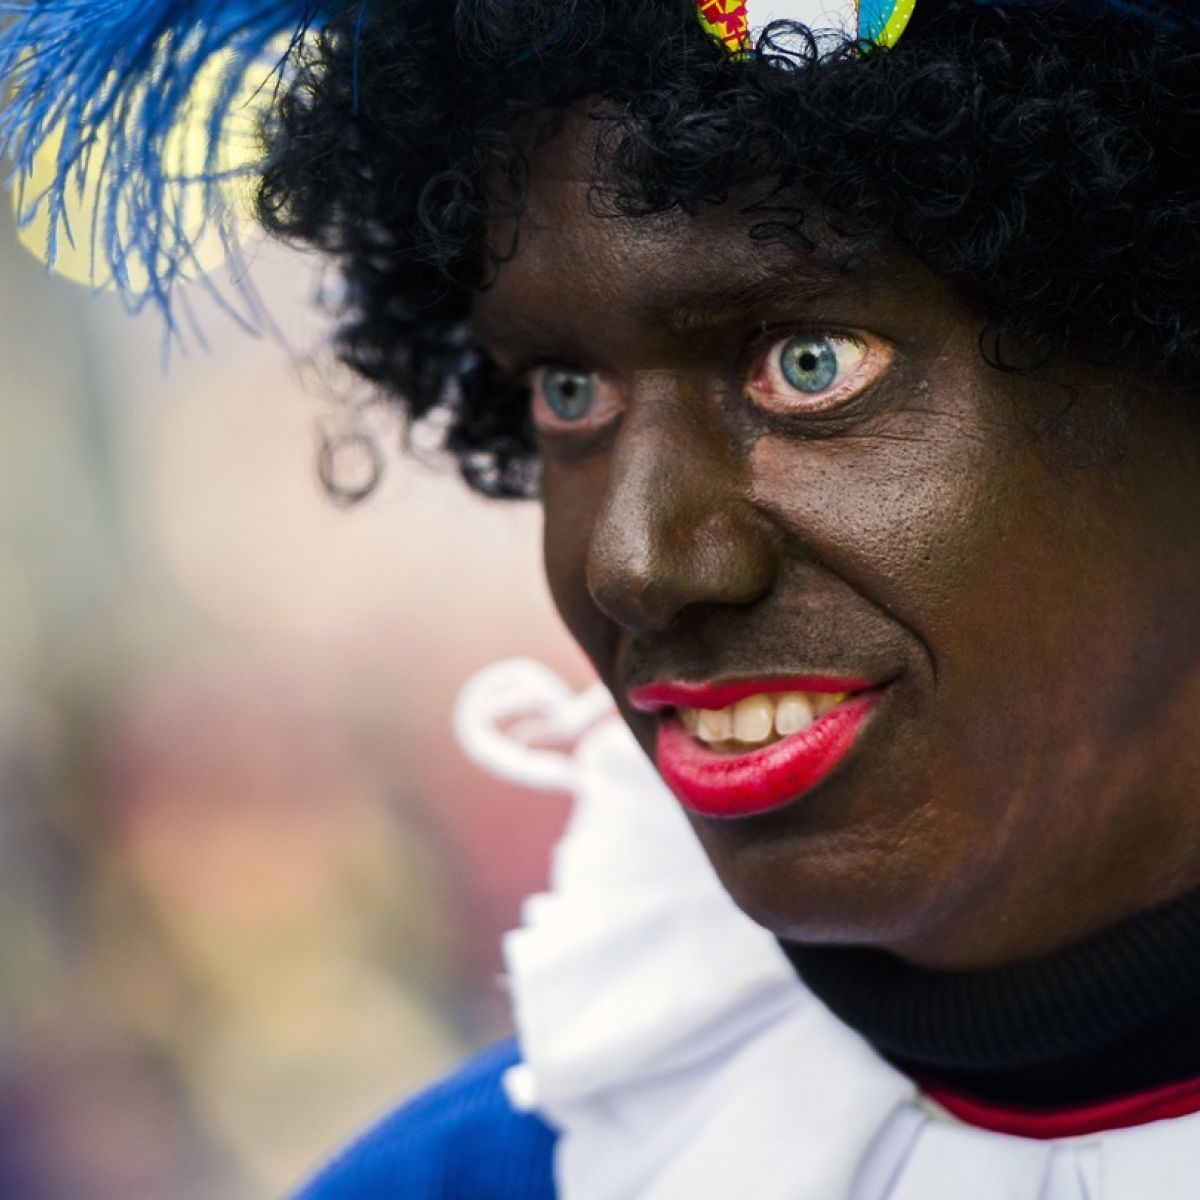 The Controversial Christmas Tradition Of Blackface In The Netherlands